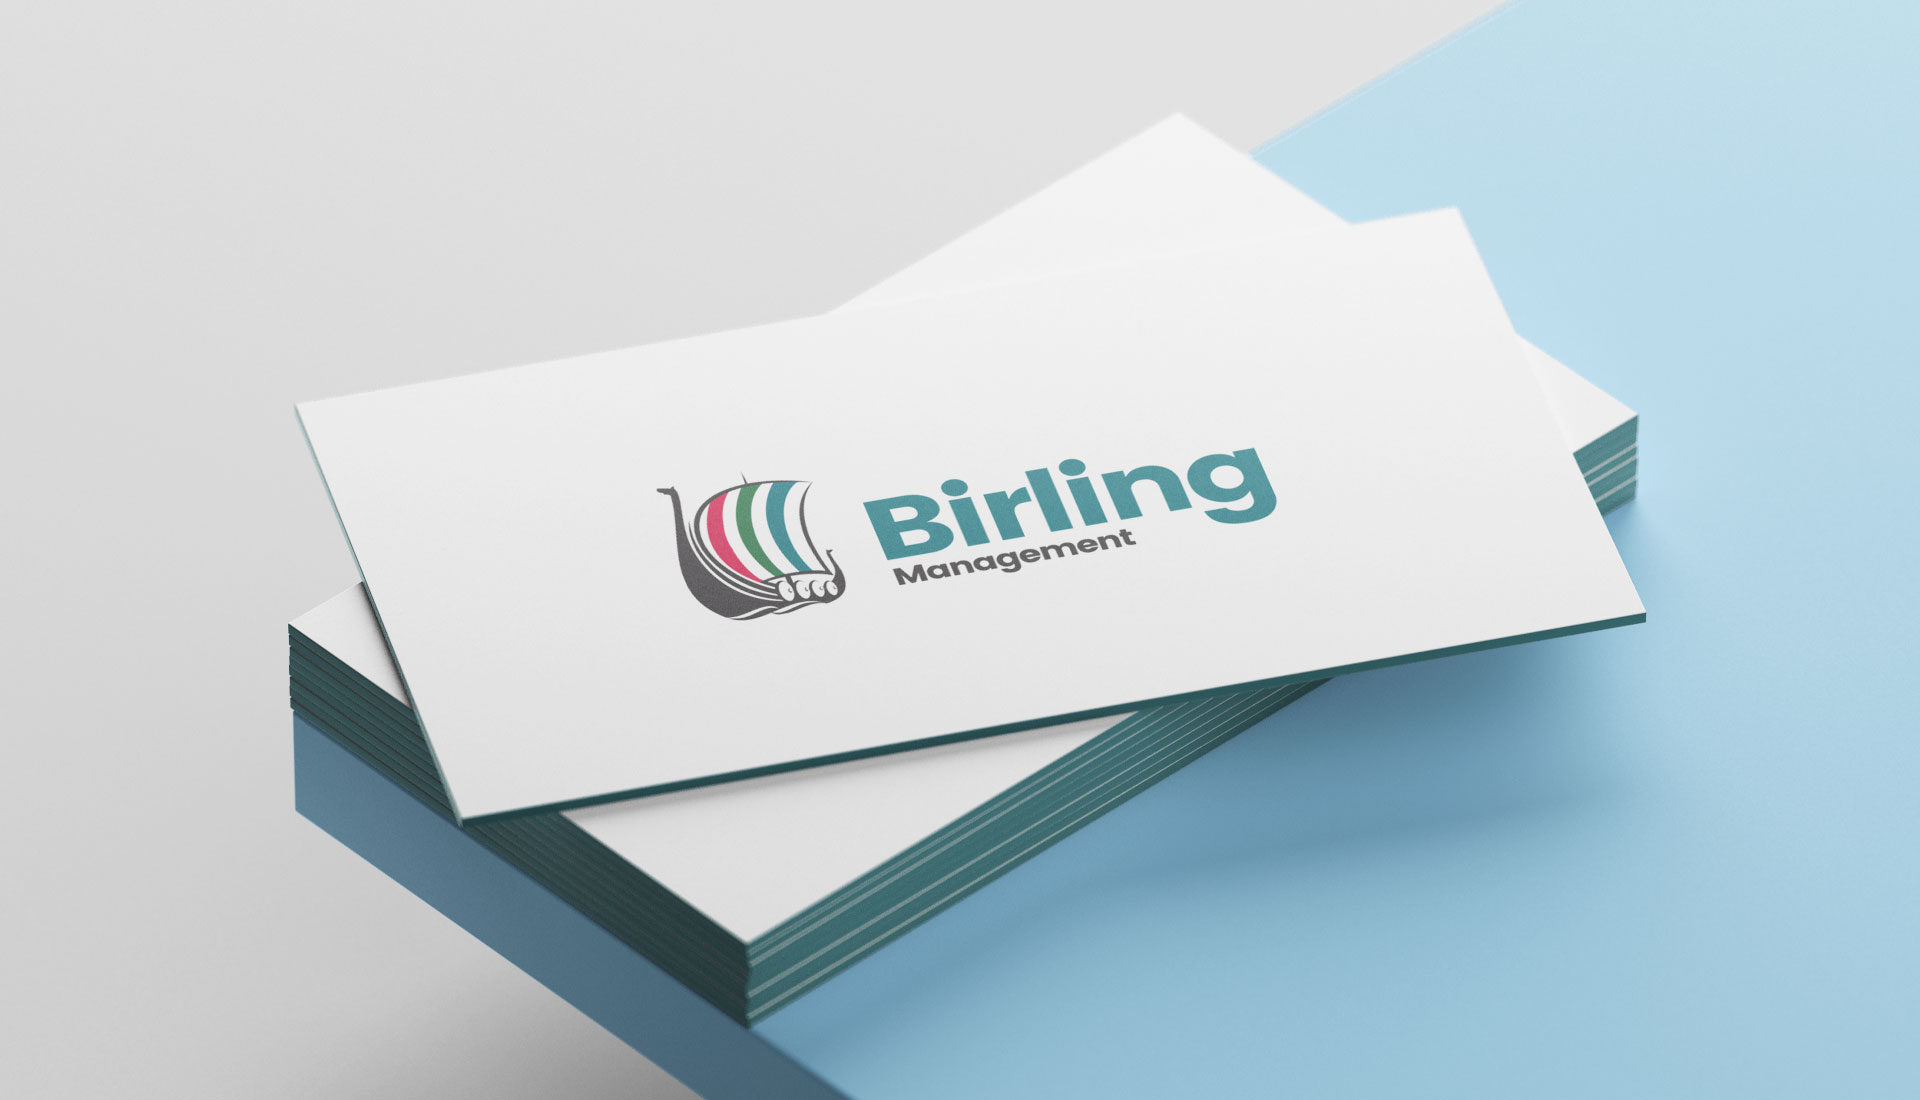 Birling Featured Image